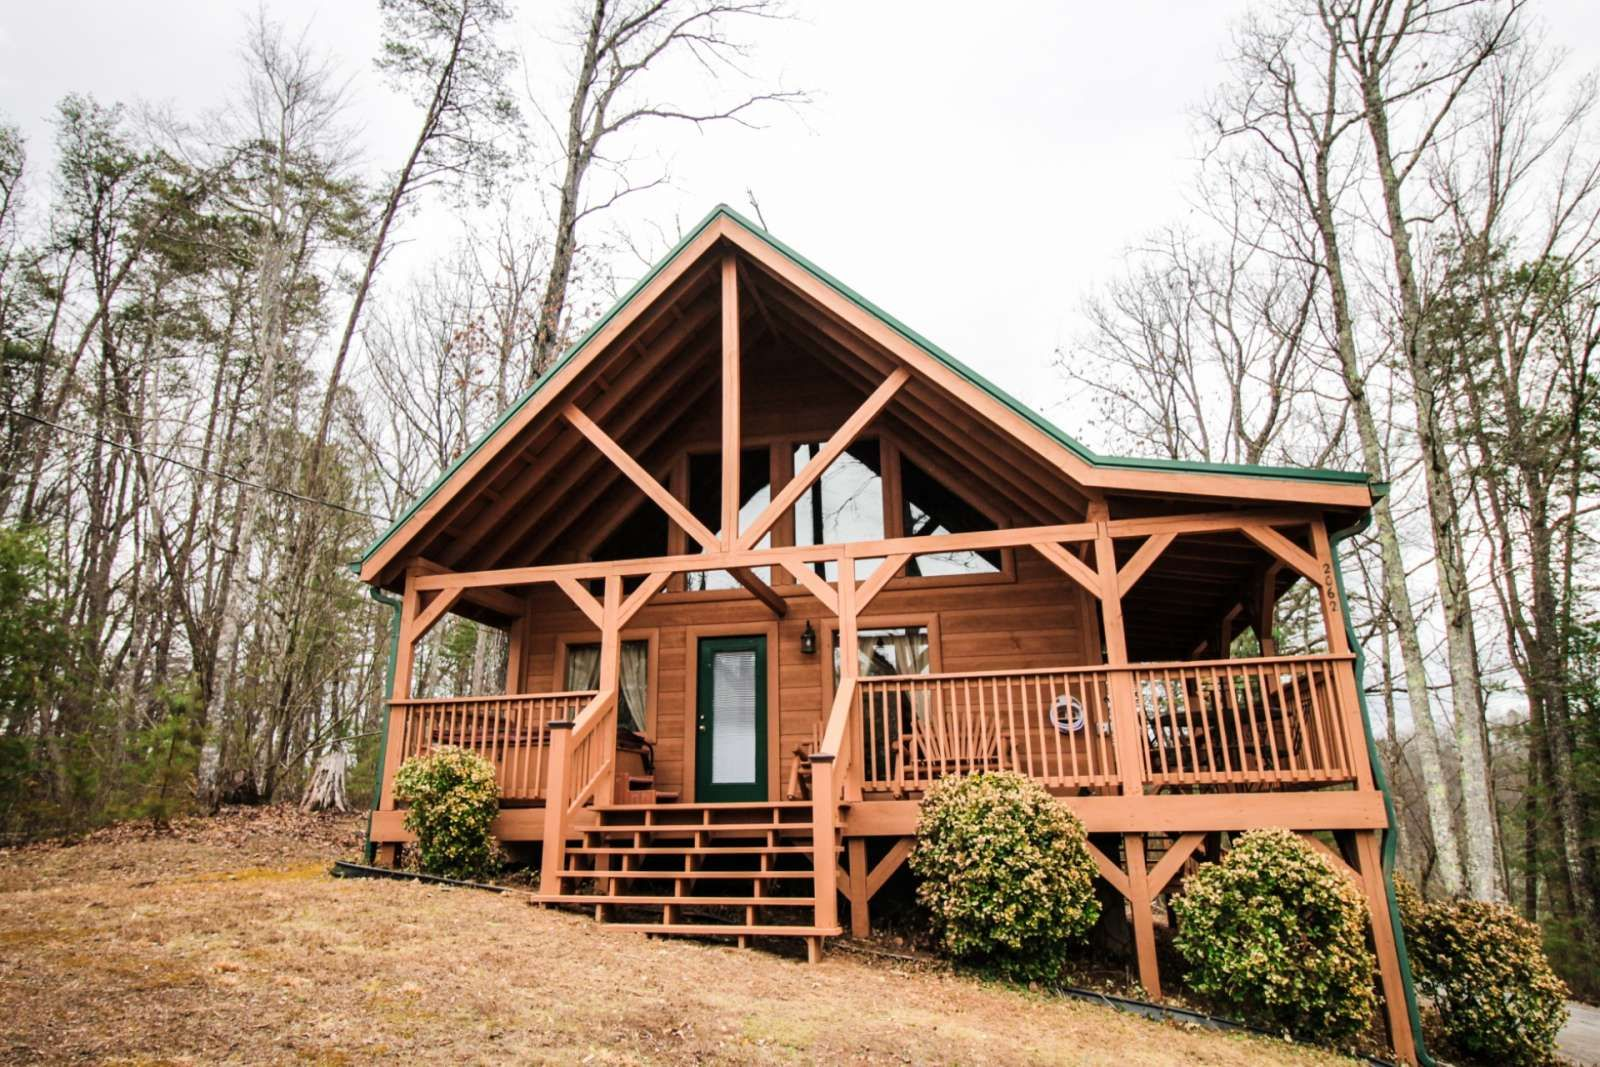 smoky bryson hot tn gatlinburg rentals cabin cabins view north with affordable for cheap great falls romantic mountains carolina rent city tub in and mountain